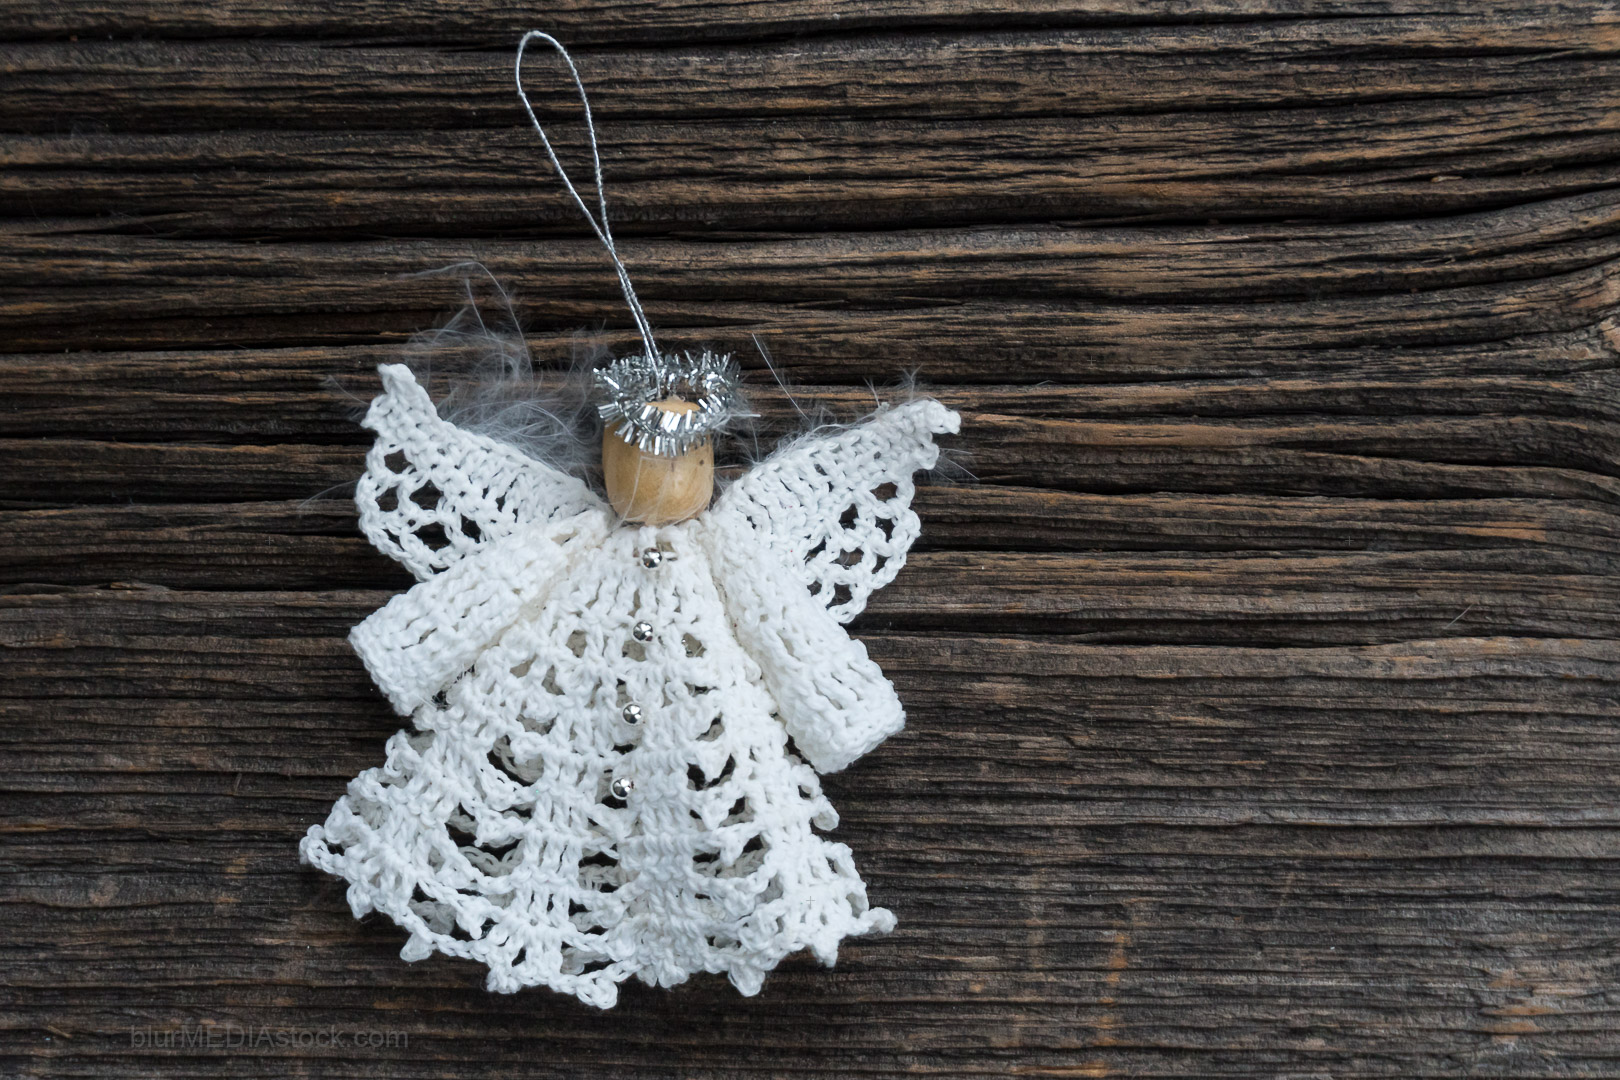 Trendy Stylish Christmas Ornament on Vintage Barn Board With Cop